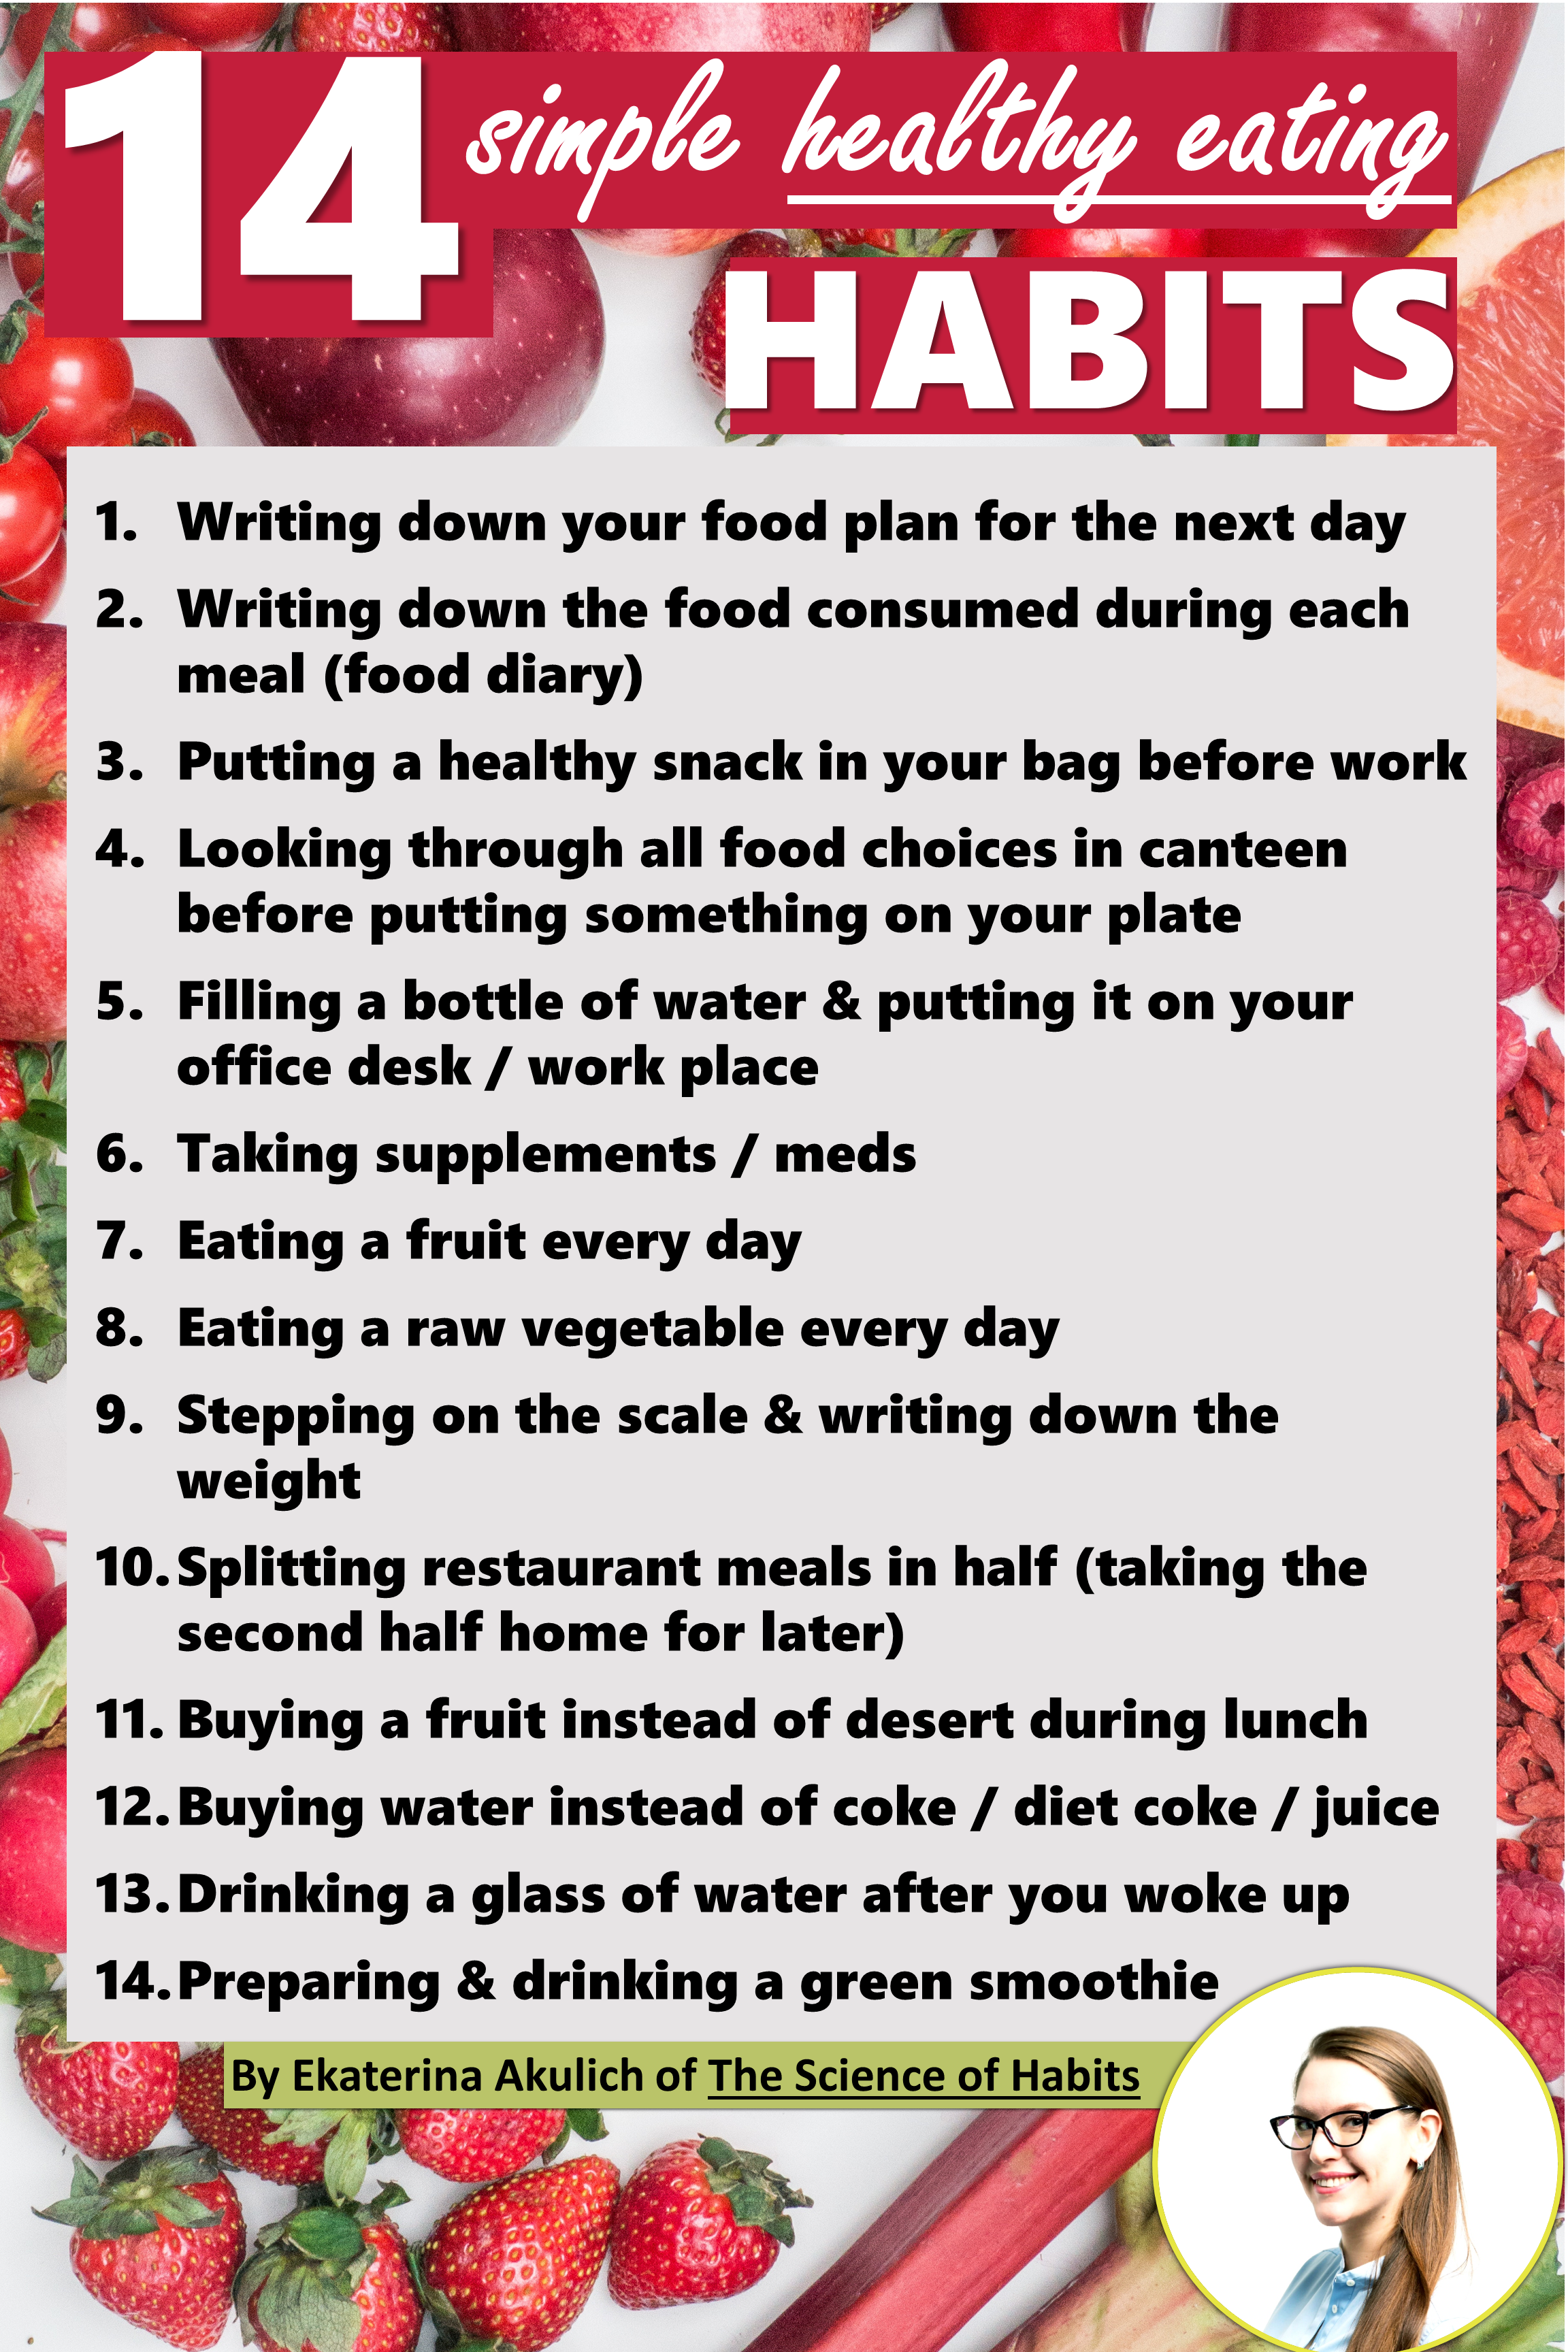 This Pin Gives An Idea Of Simple Healthy Eating Habits